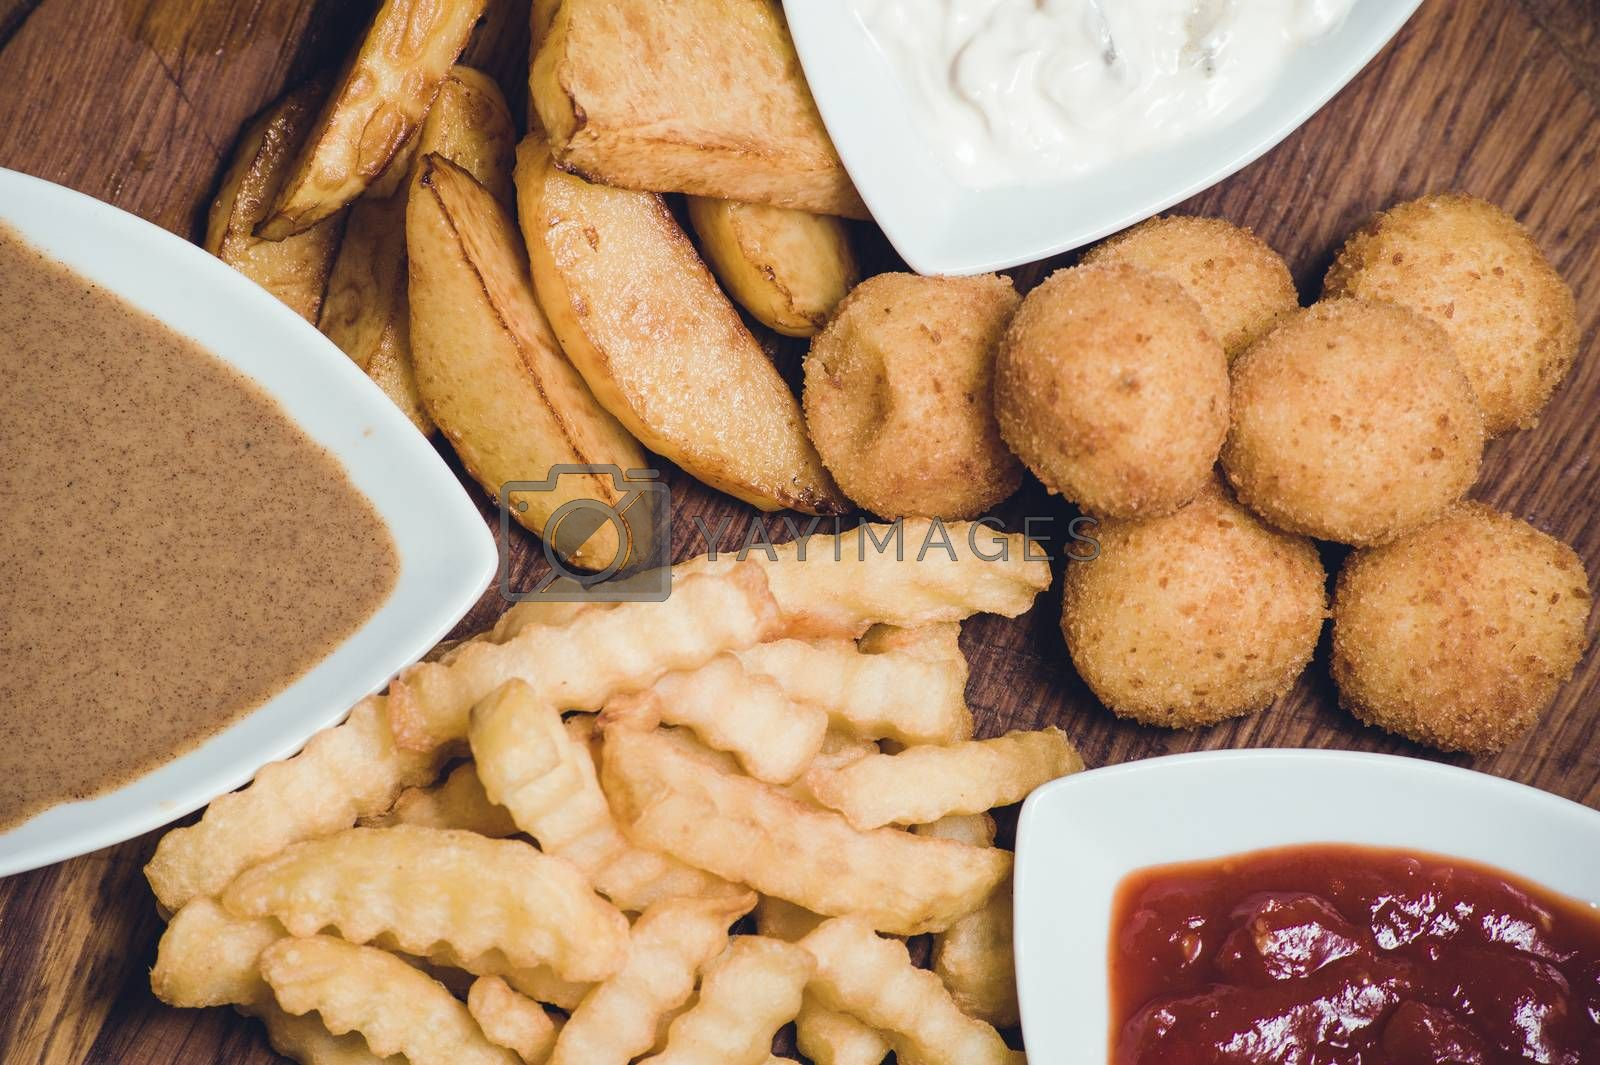 snack potato platter with dips on wooden board